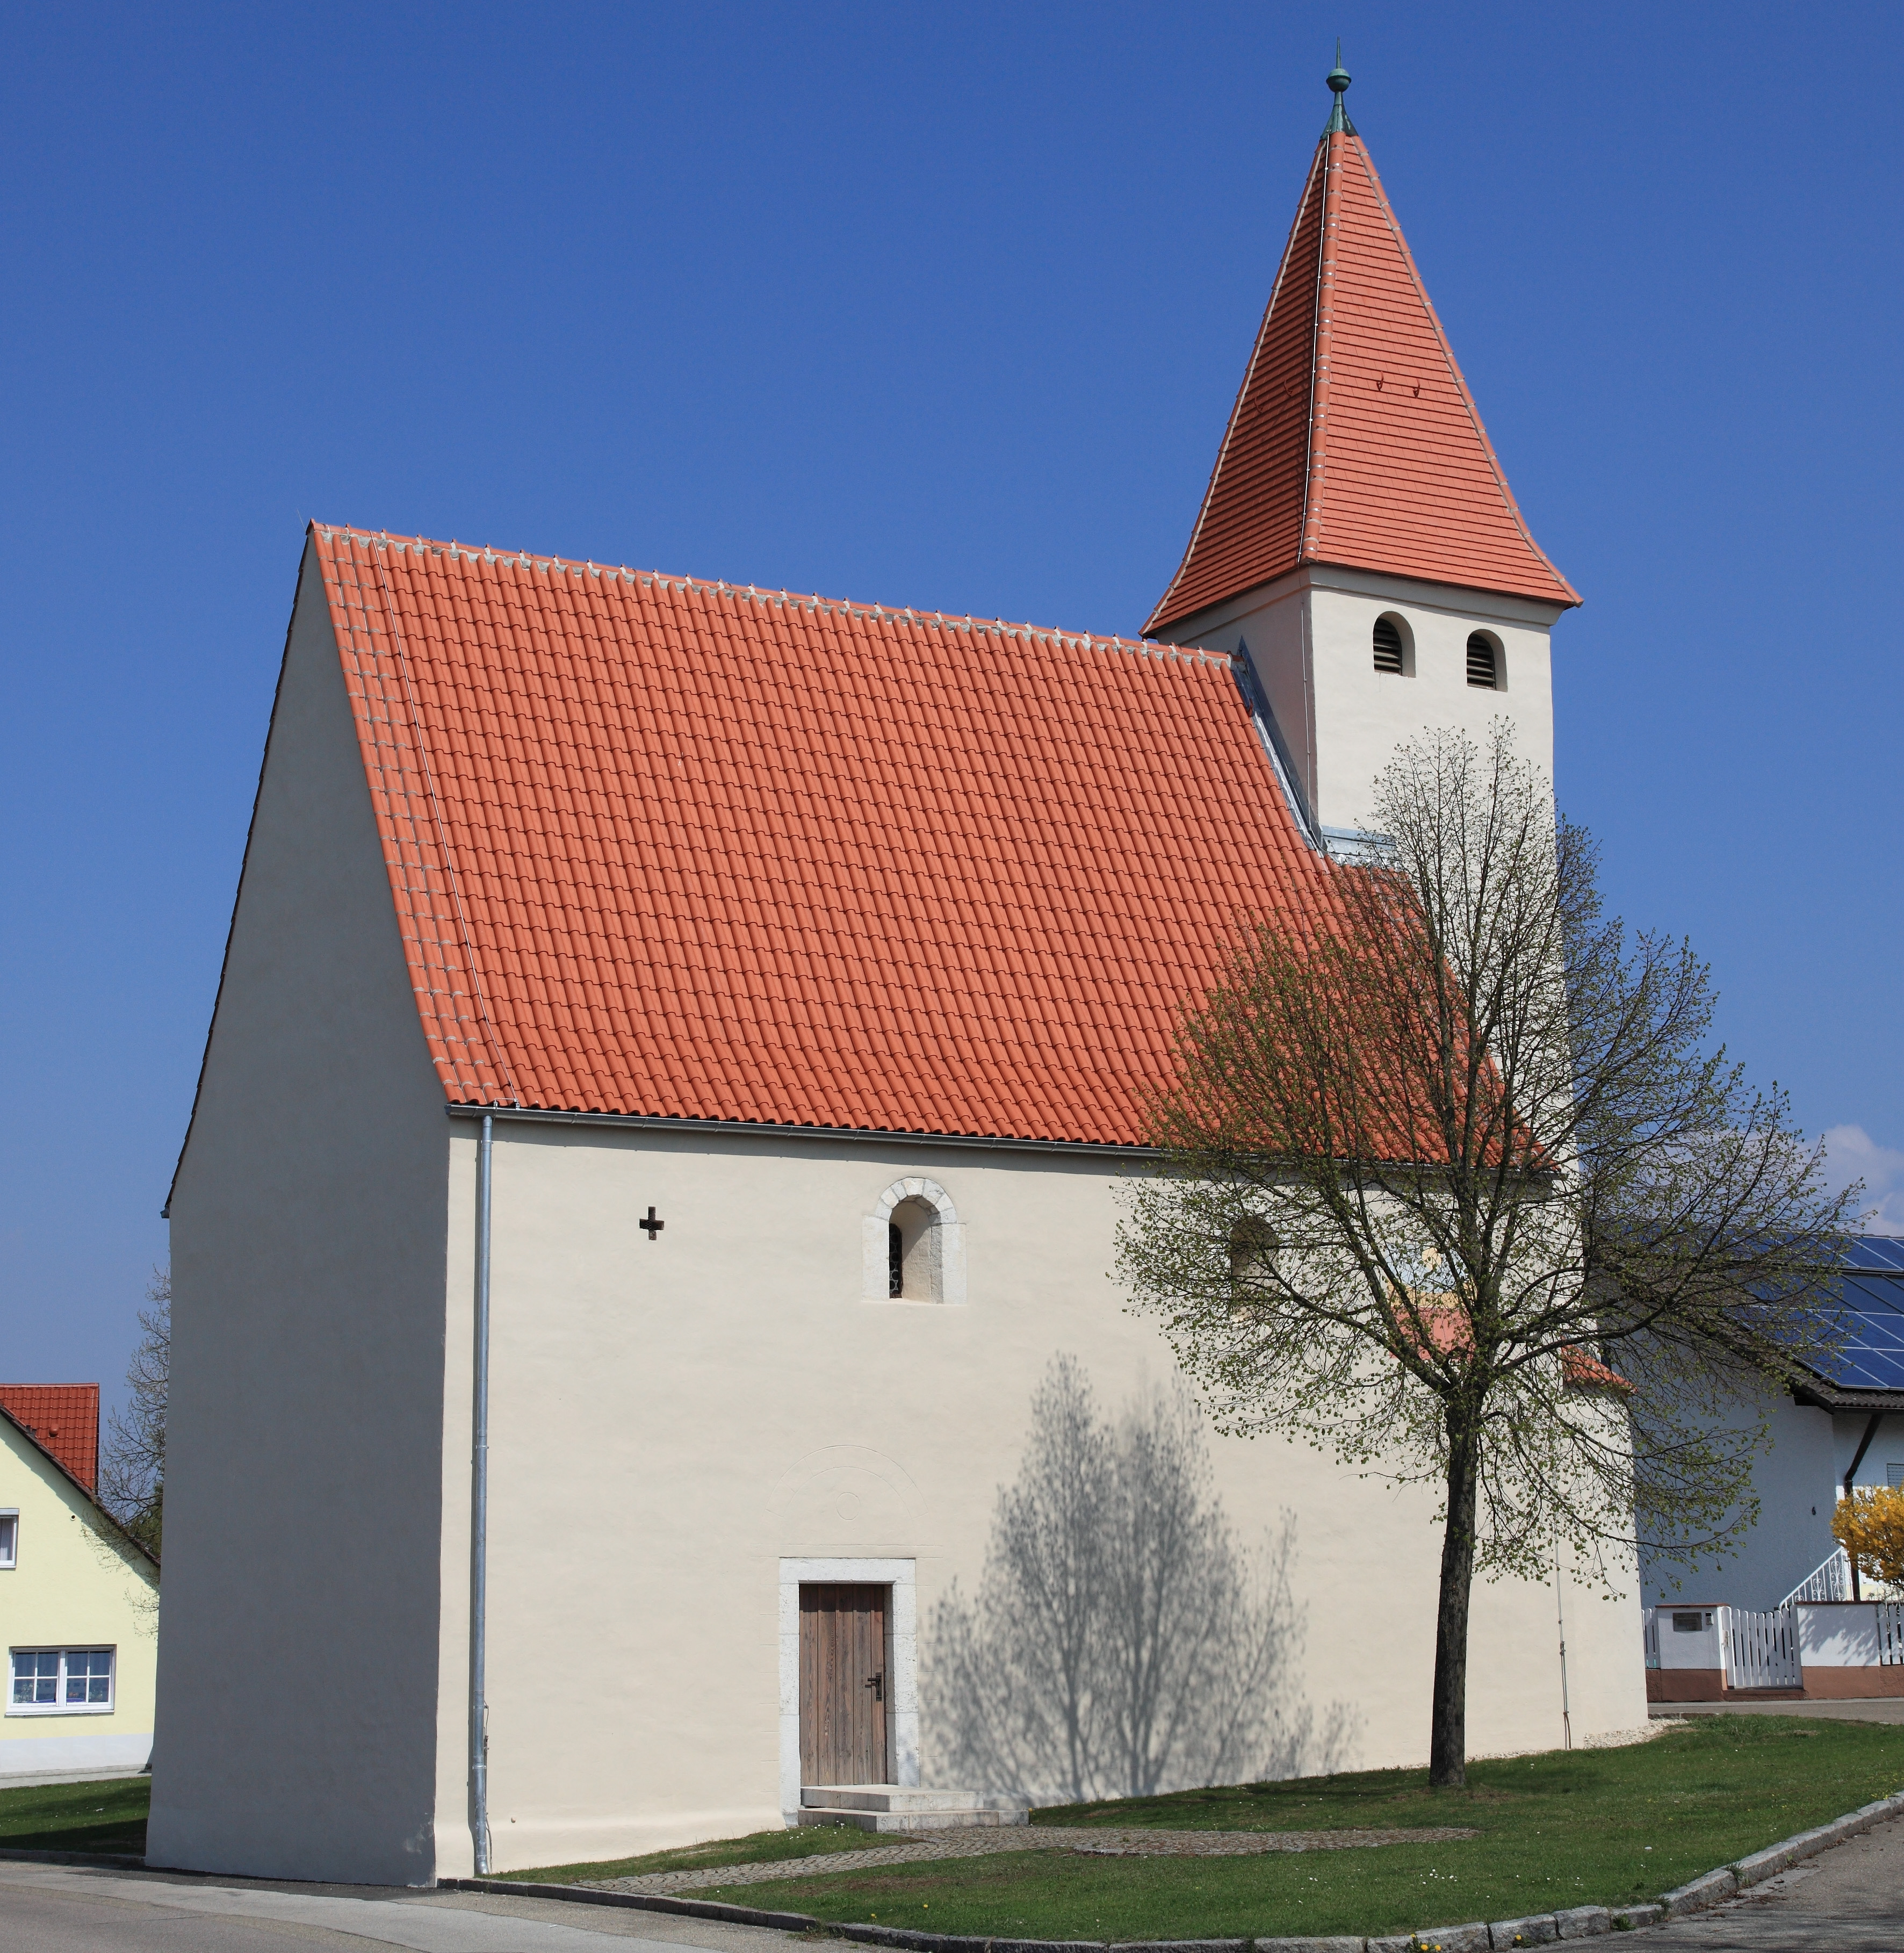 Hepberg Romanesque old St. Oswald church